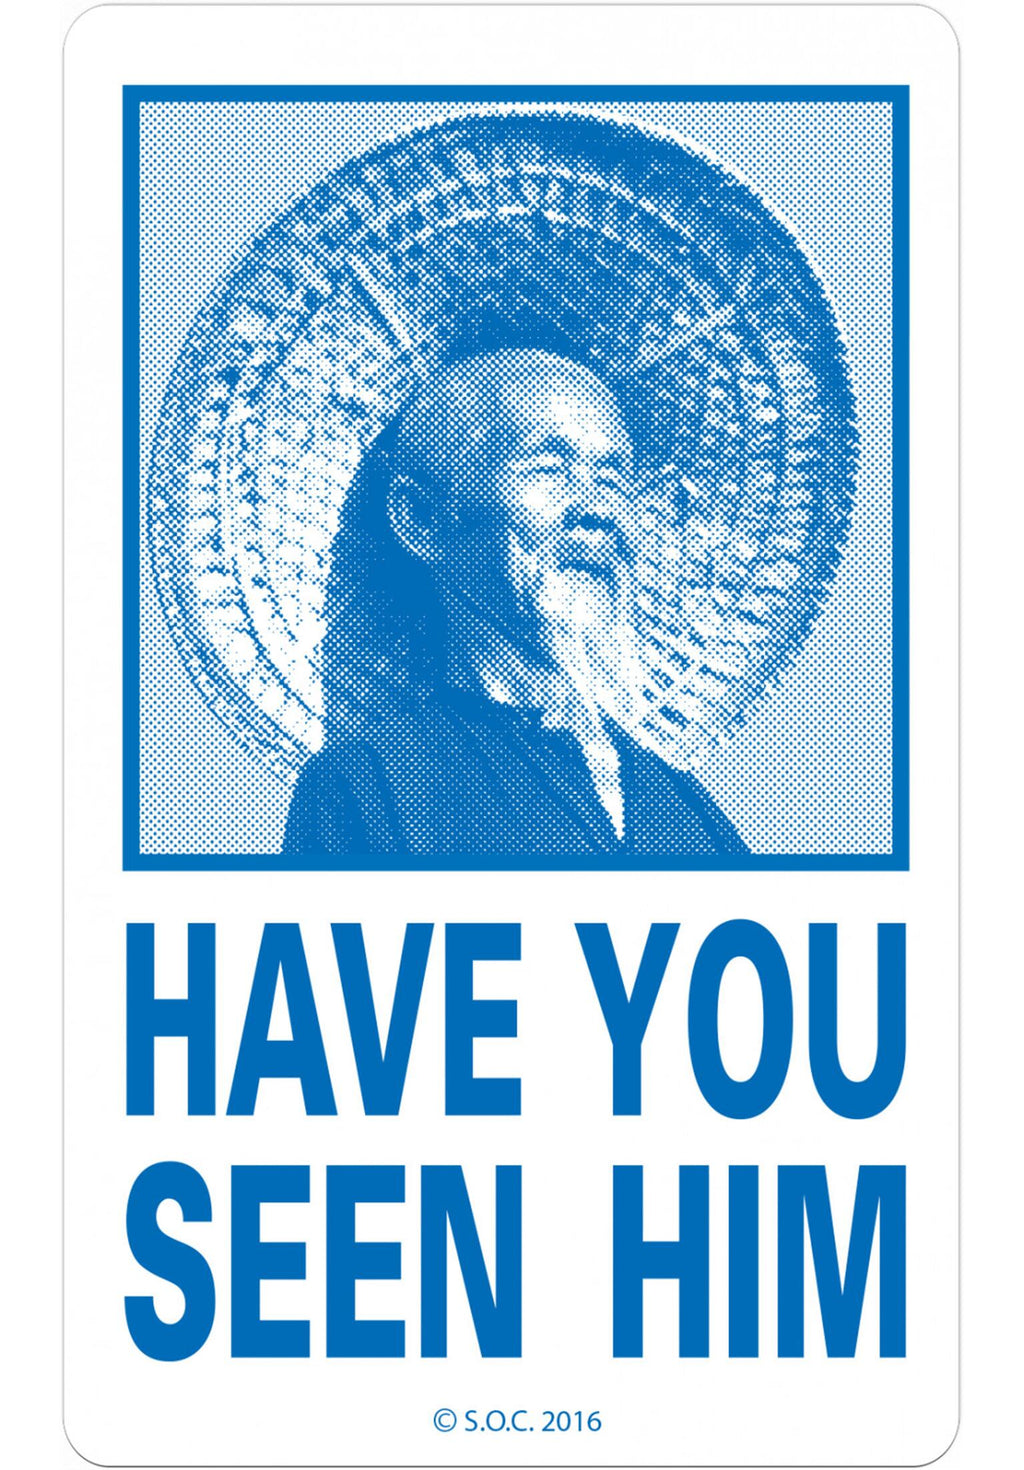 POWELL-PERALTA 'Have You Seen Him' Sticker